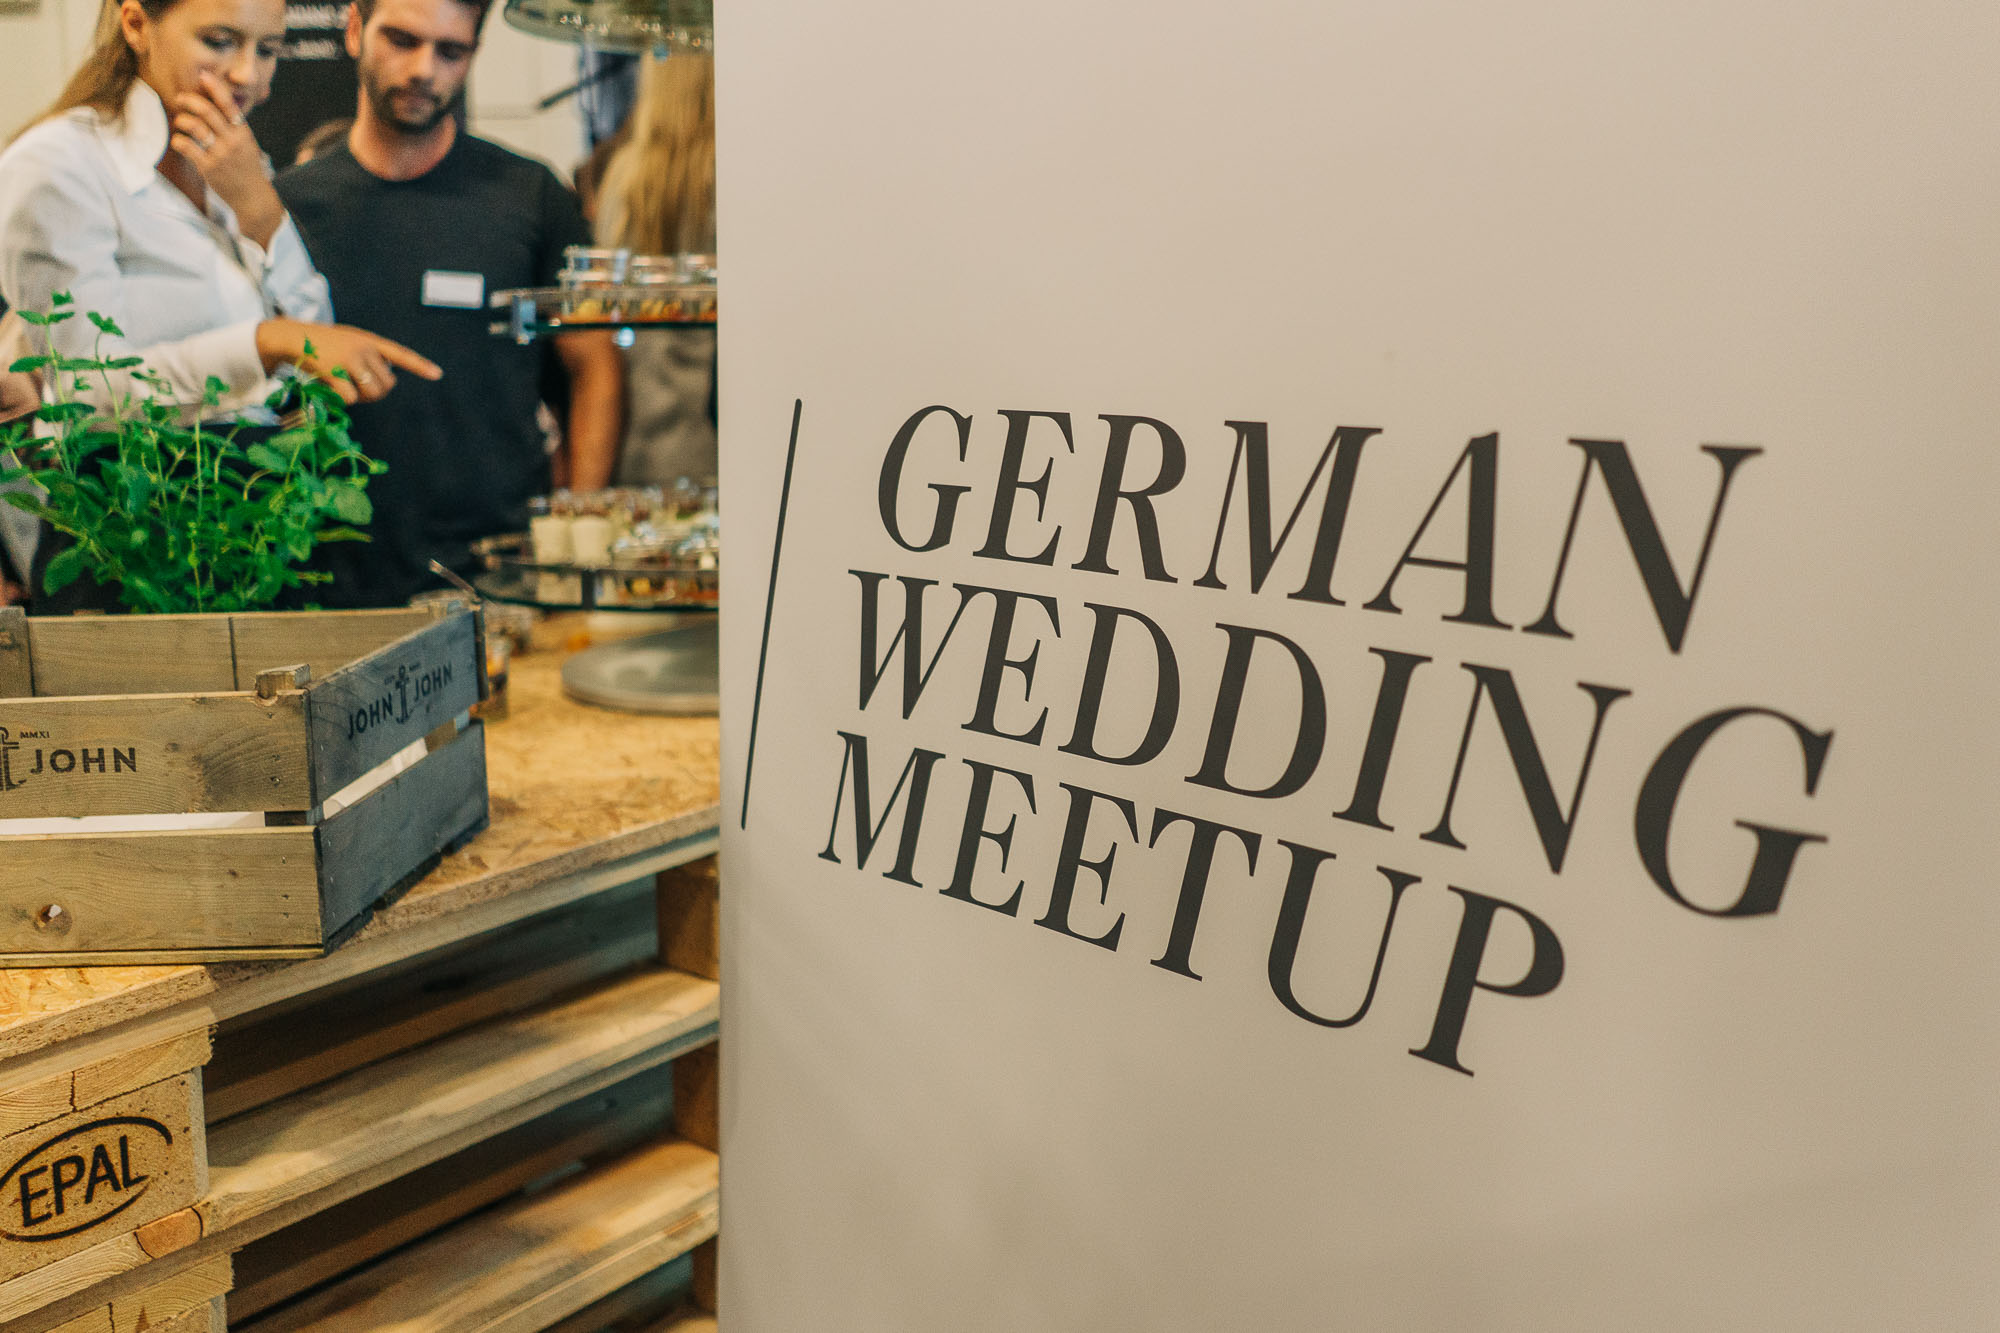 photokina und Wedding Zone 2018 in Köln - Bild 3 - German Wedding Meetup